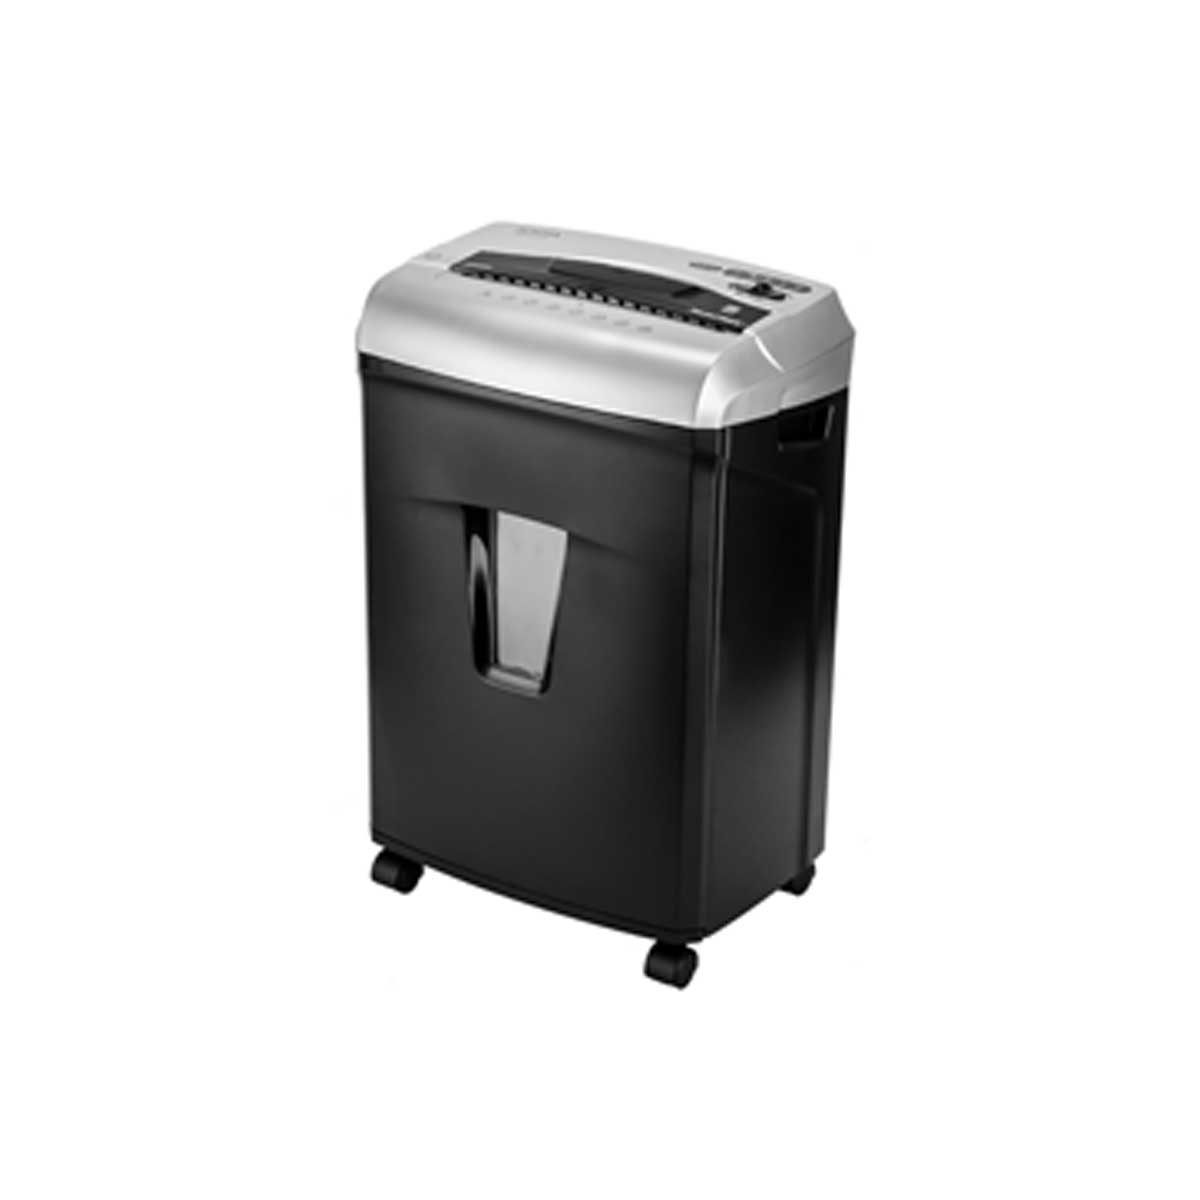 Aurora AS1231C 5 x 55mm Cross Cut Shredder